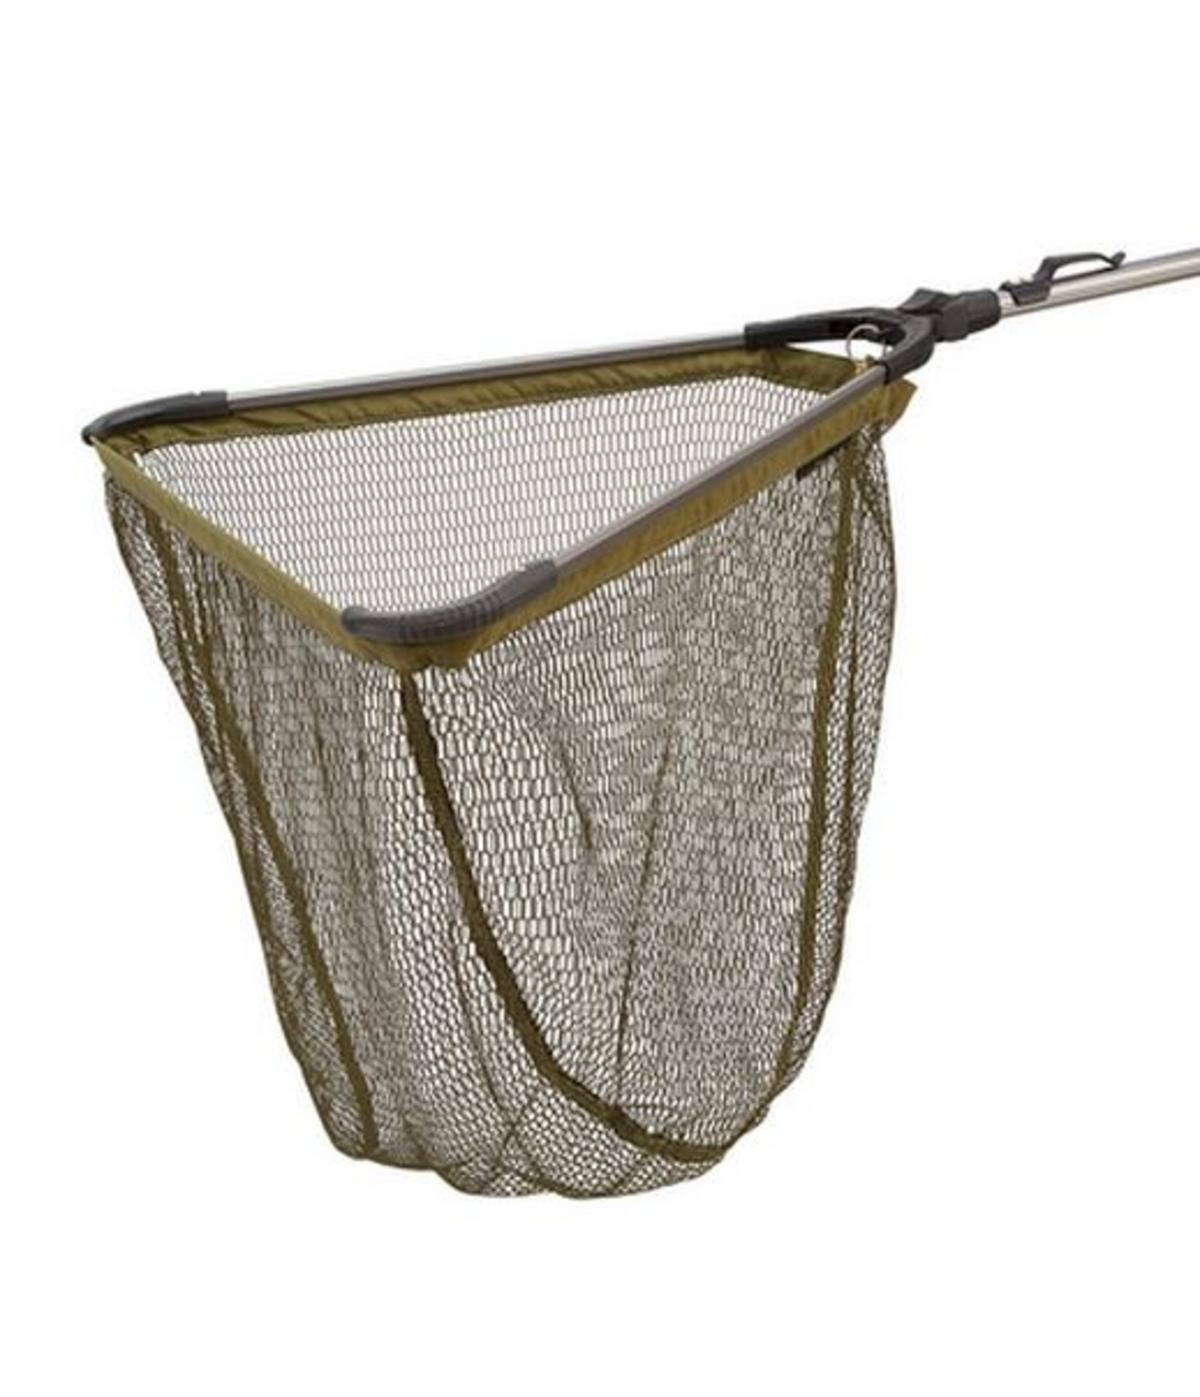 NEW DAIWA TROUT FISHING FOLDING TELESCOPIC LANDING NET 60CM DTN4